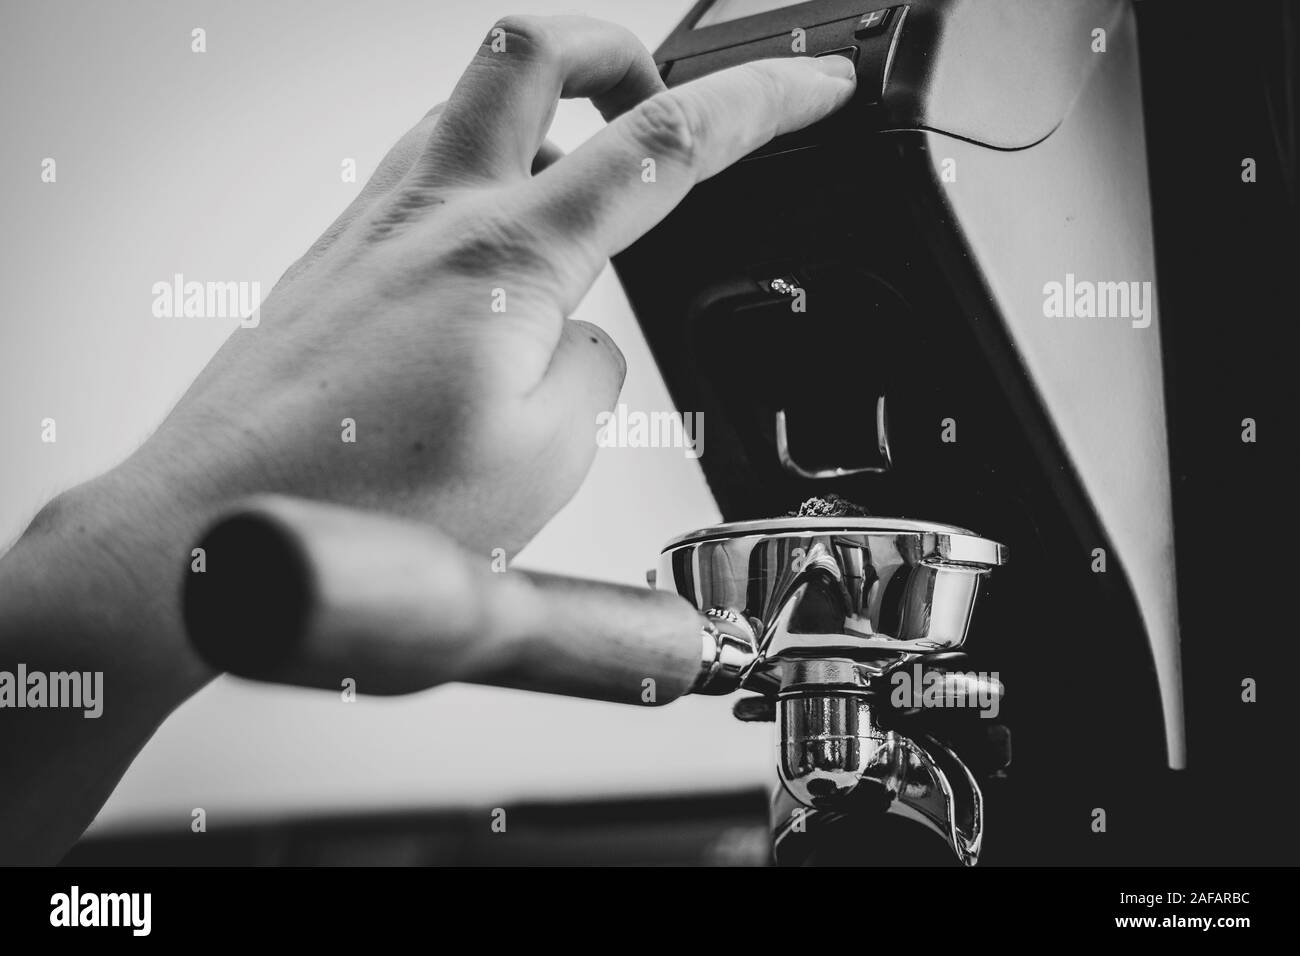 A portrait of a barista pressing the button of a coffee grinder to fill a portafilter full of freshly grinded coffee grounds from fresh coffee beans. Stock Photo